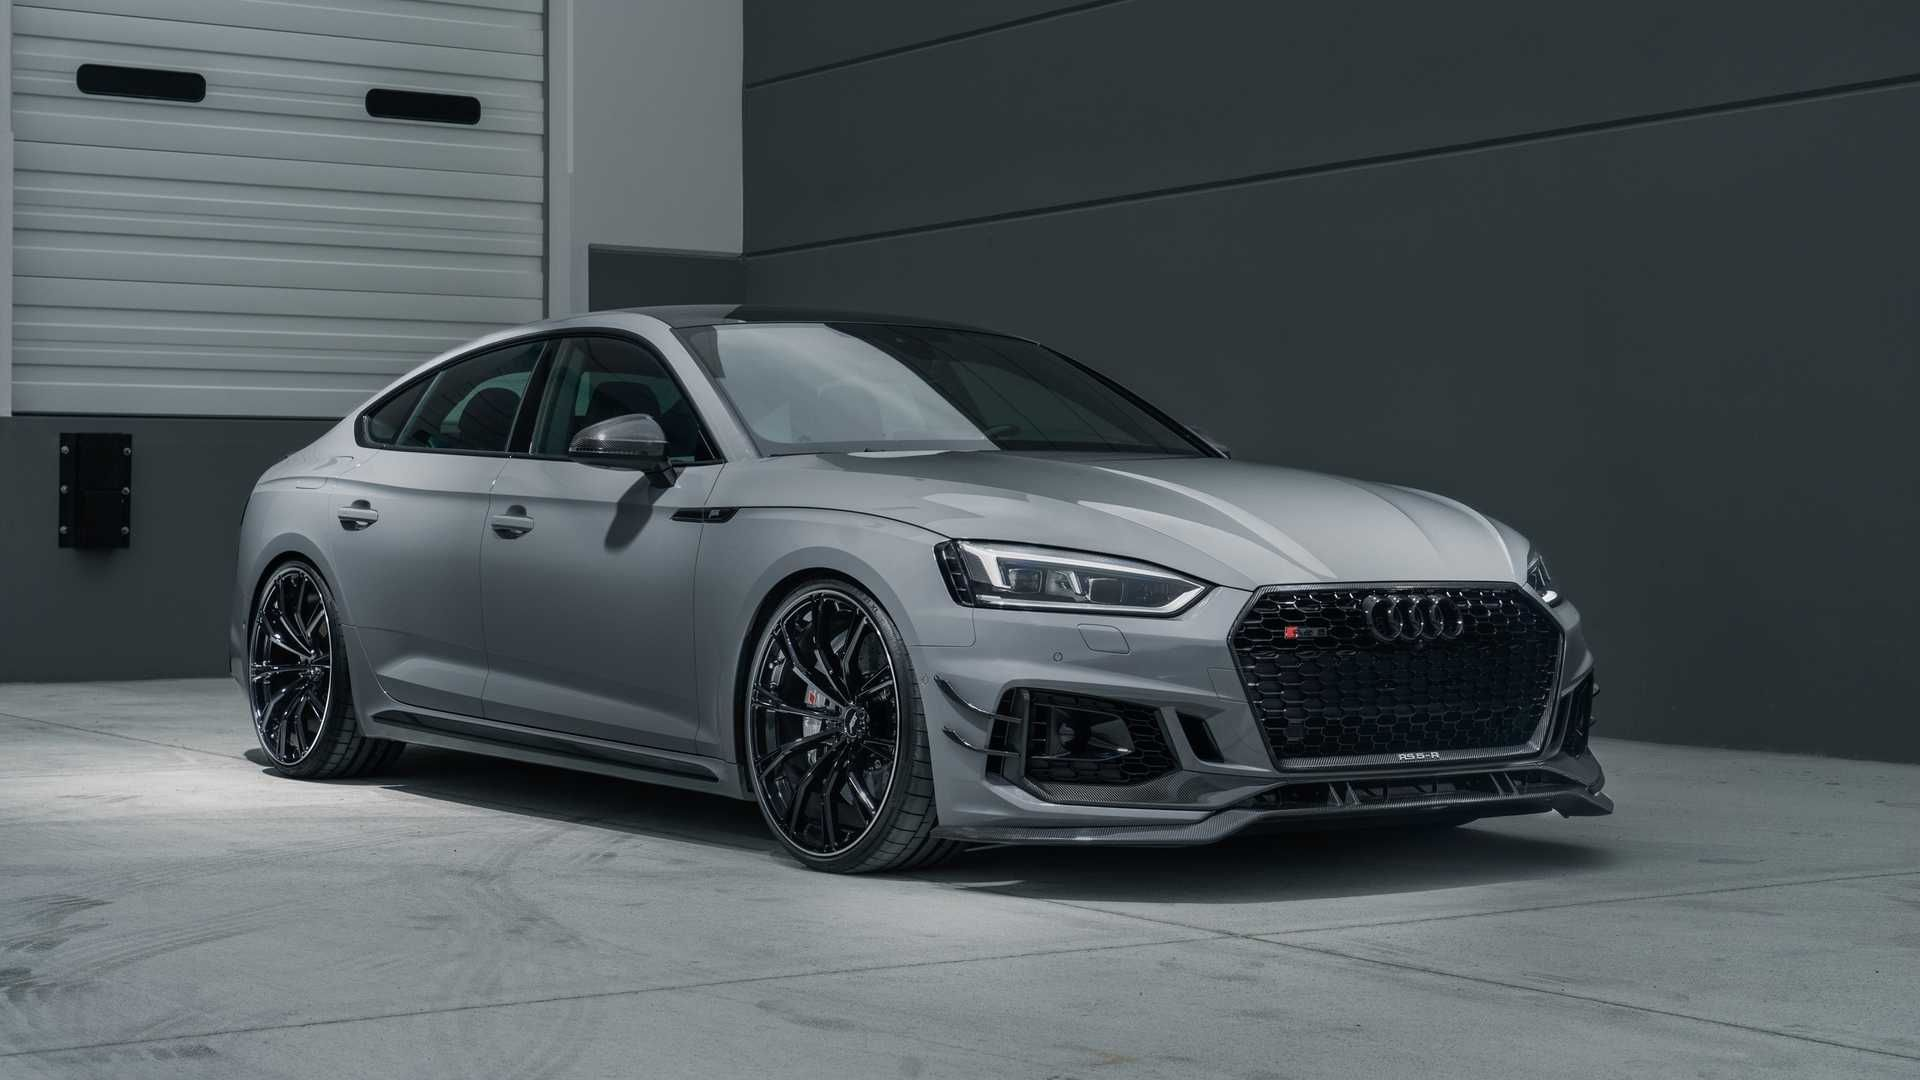 ABT Shows Off Their New RS5-R Based On Audi RS5 Sportback